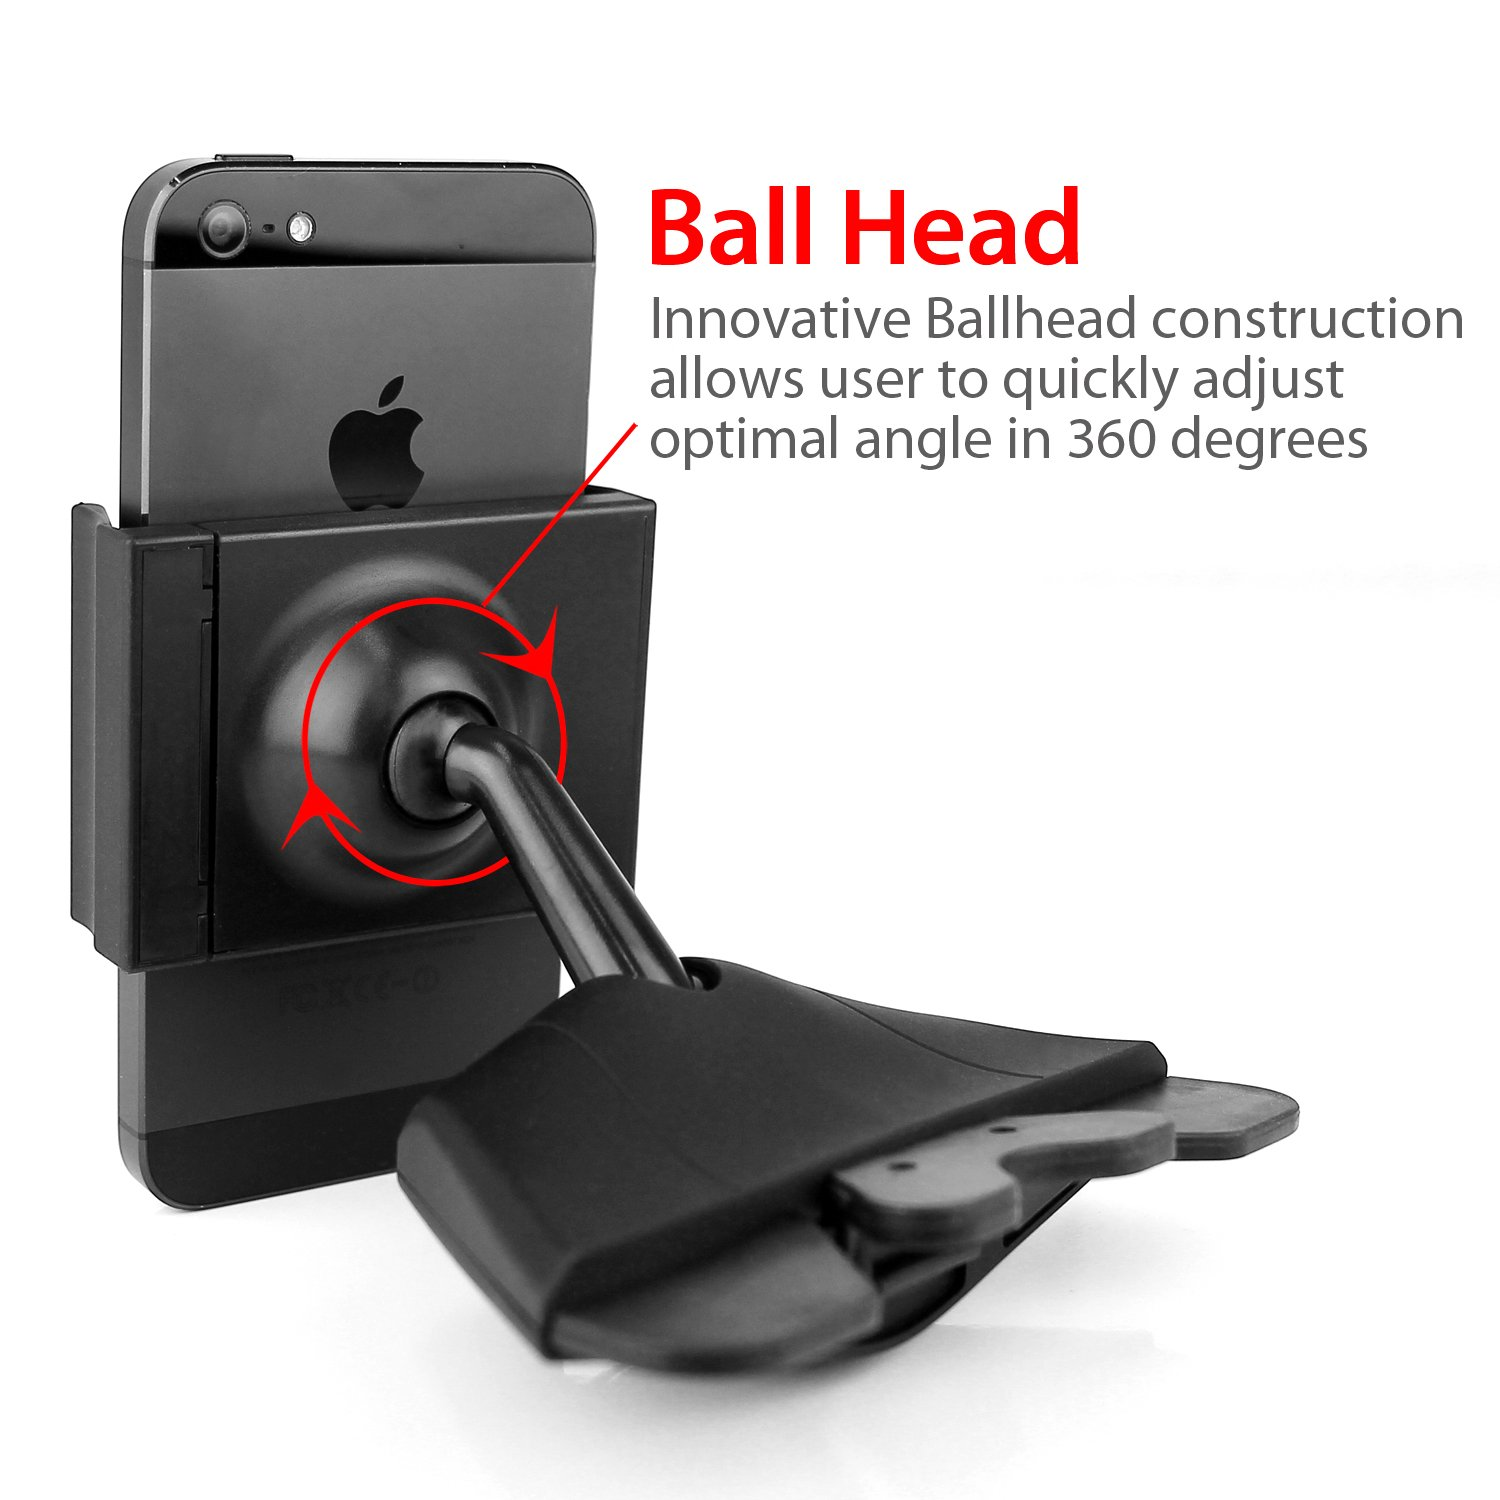 Koomus cd air cd slot smartphone car mount holder cradle for all iphone and android devices black amazon ca cell phones accessories